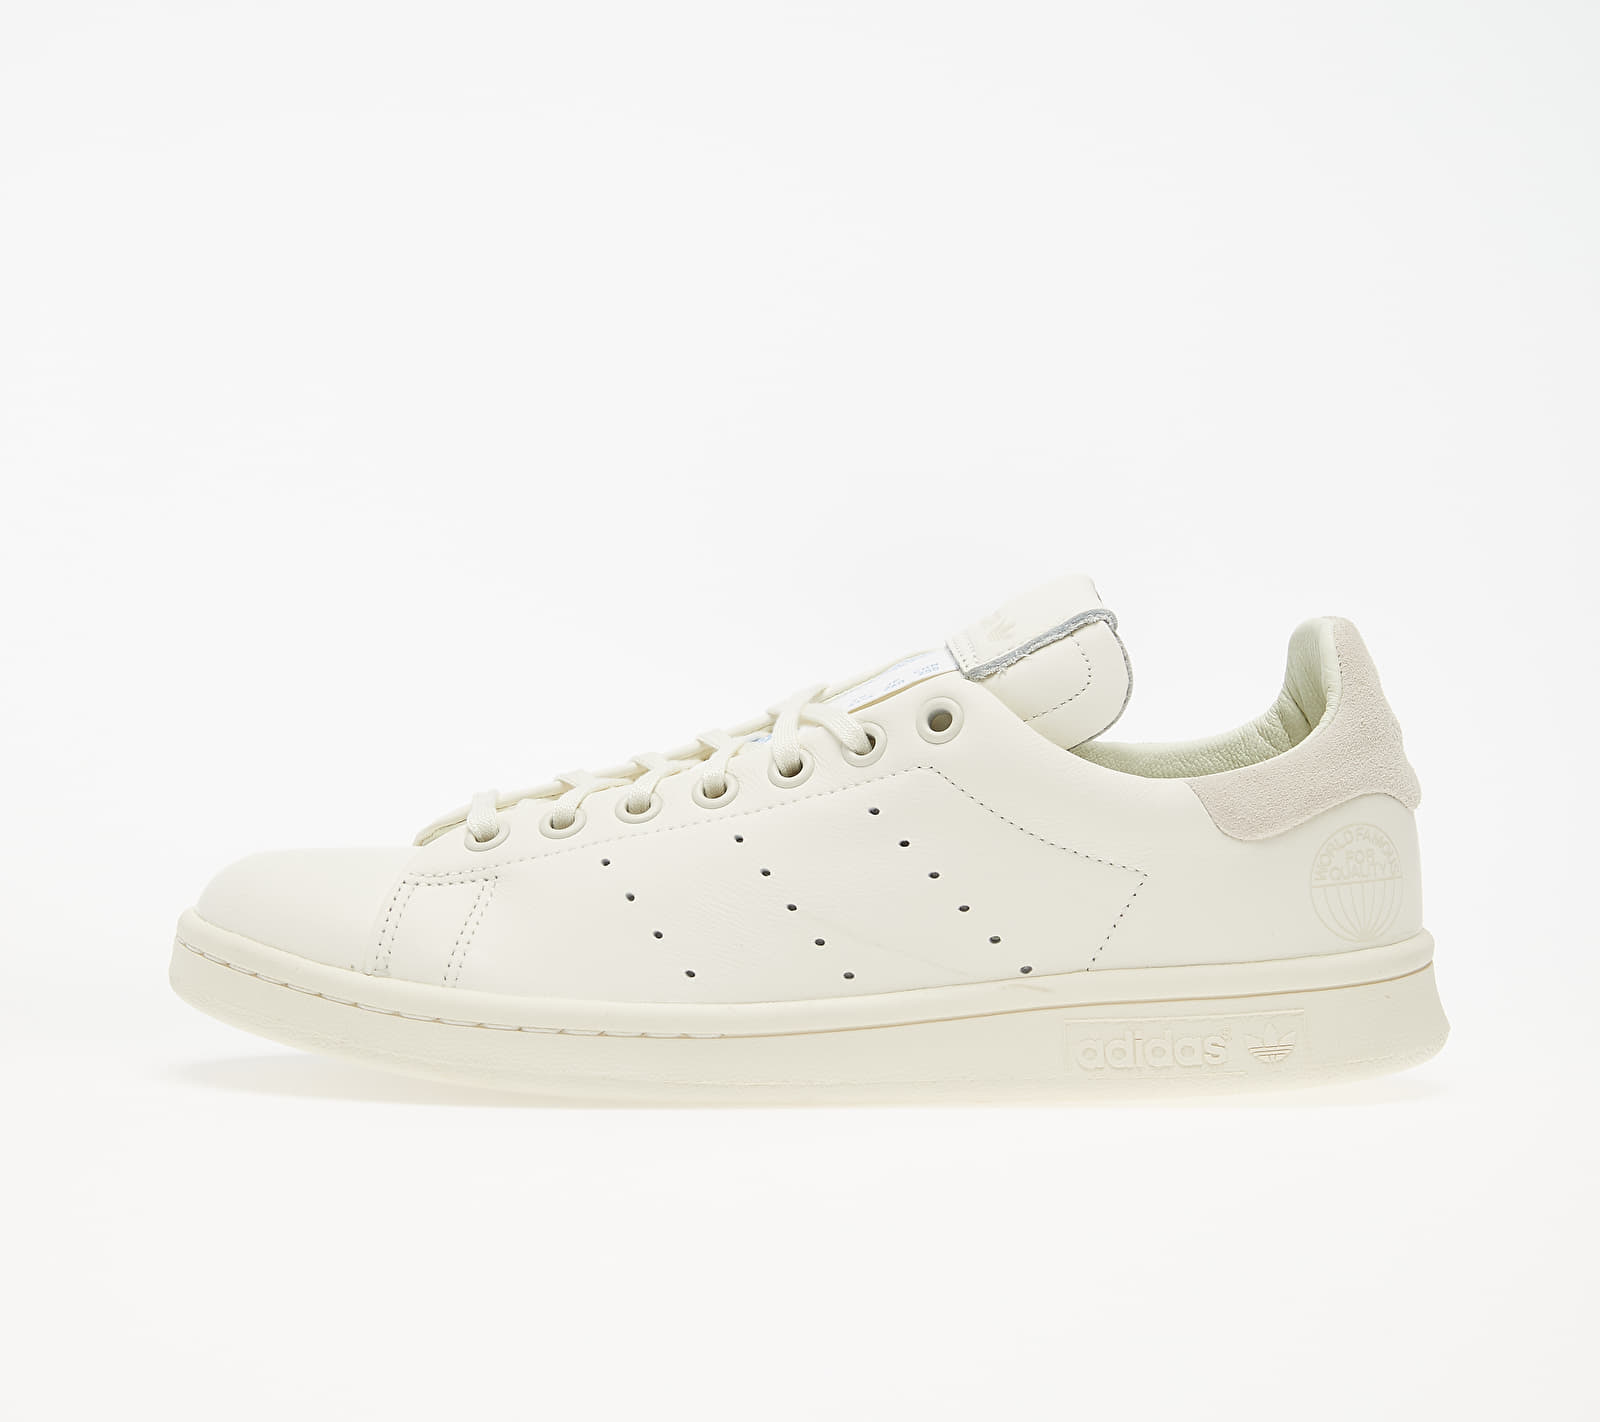 adidas Stan Smith Recon Off White/ Off White/ Off White EUR 47 1/3